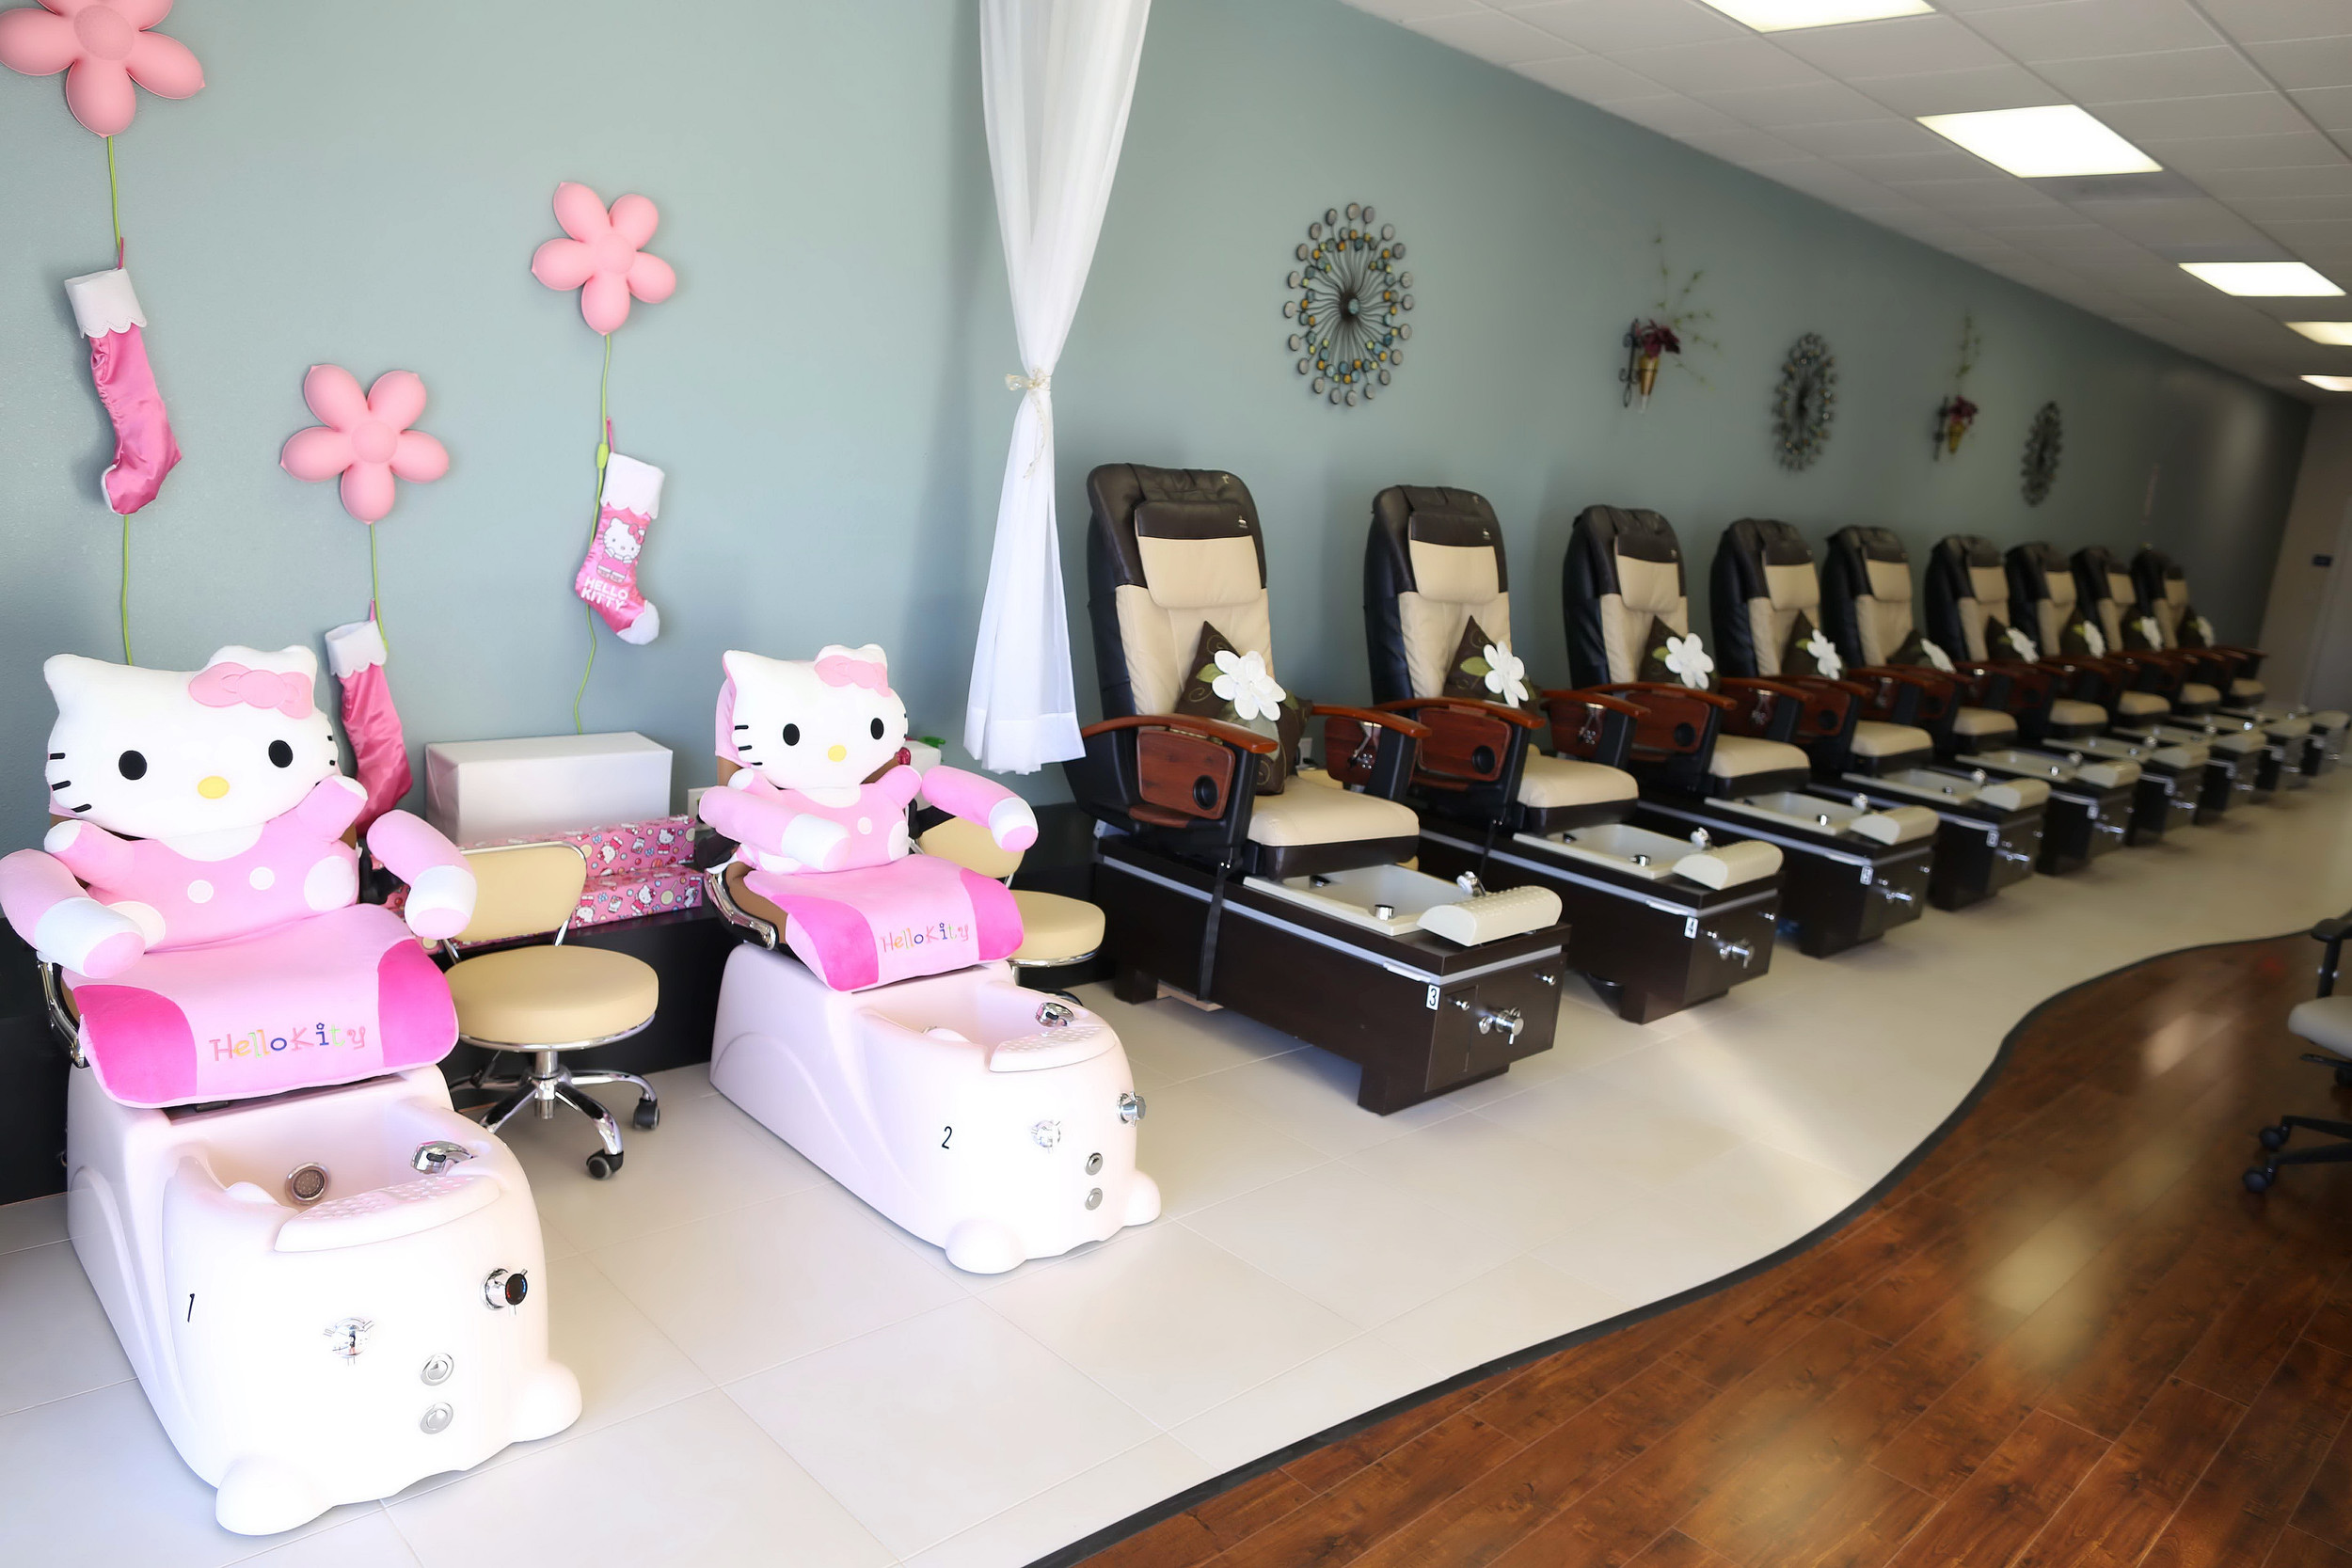 child pedicure chair wine table and chairs princess treatments perfect 10 nail spa with our special hello kitty kid sized we re ready to treat every little like a queen